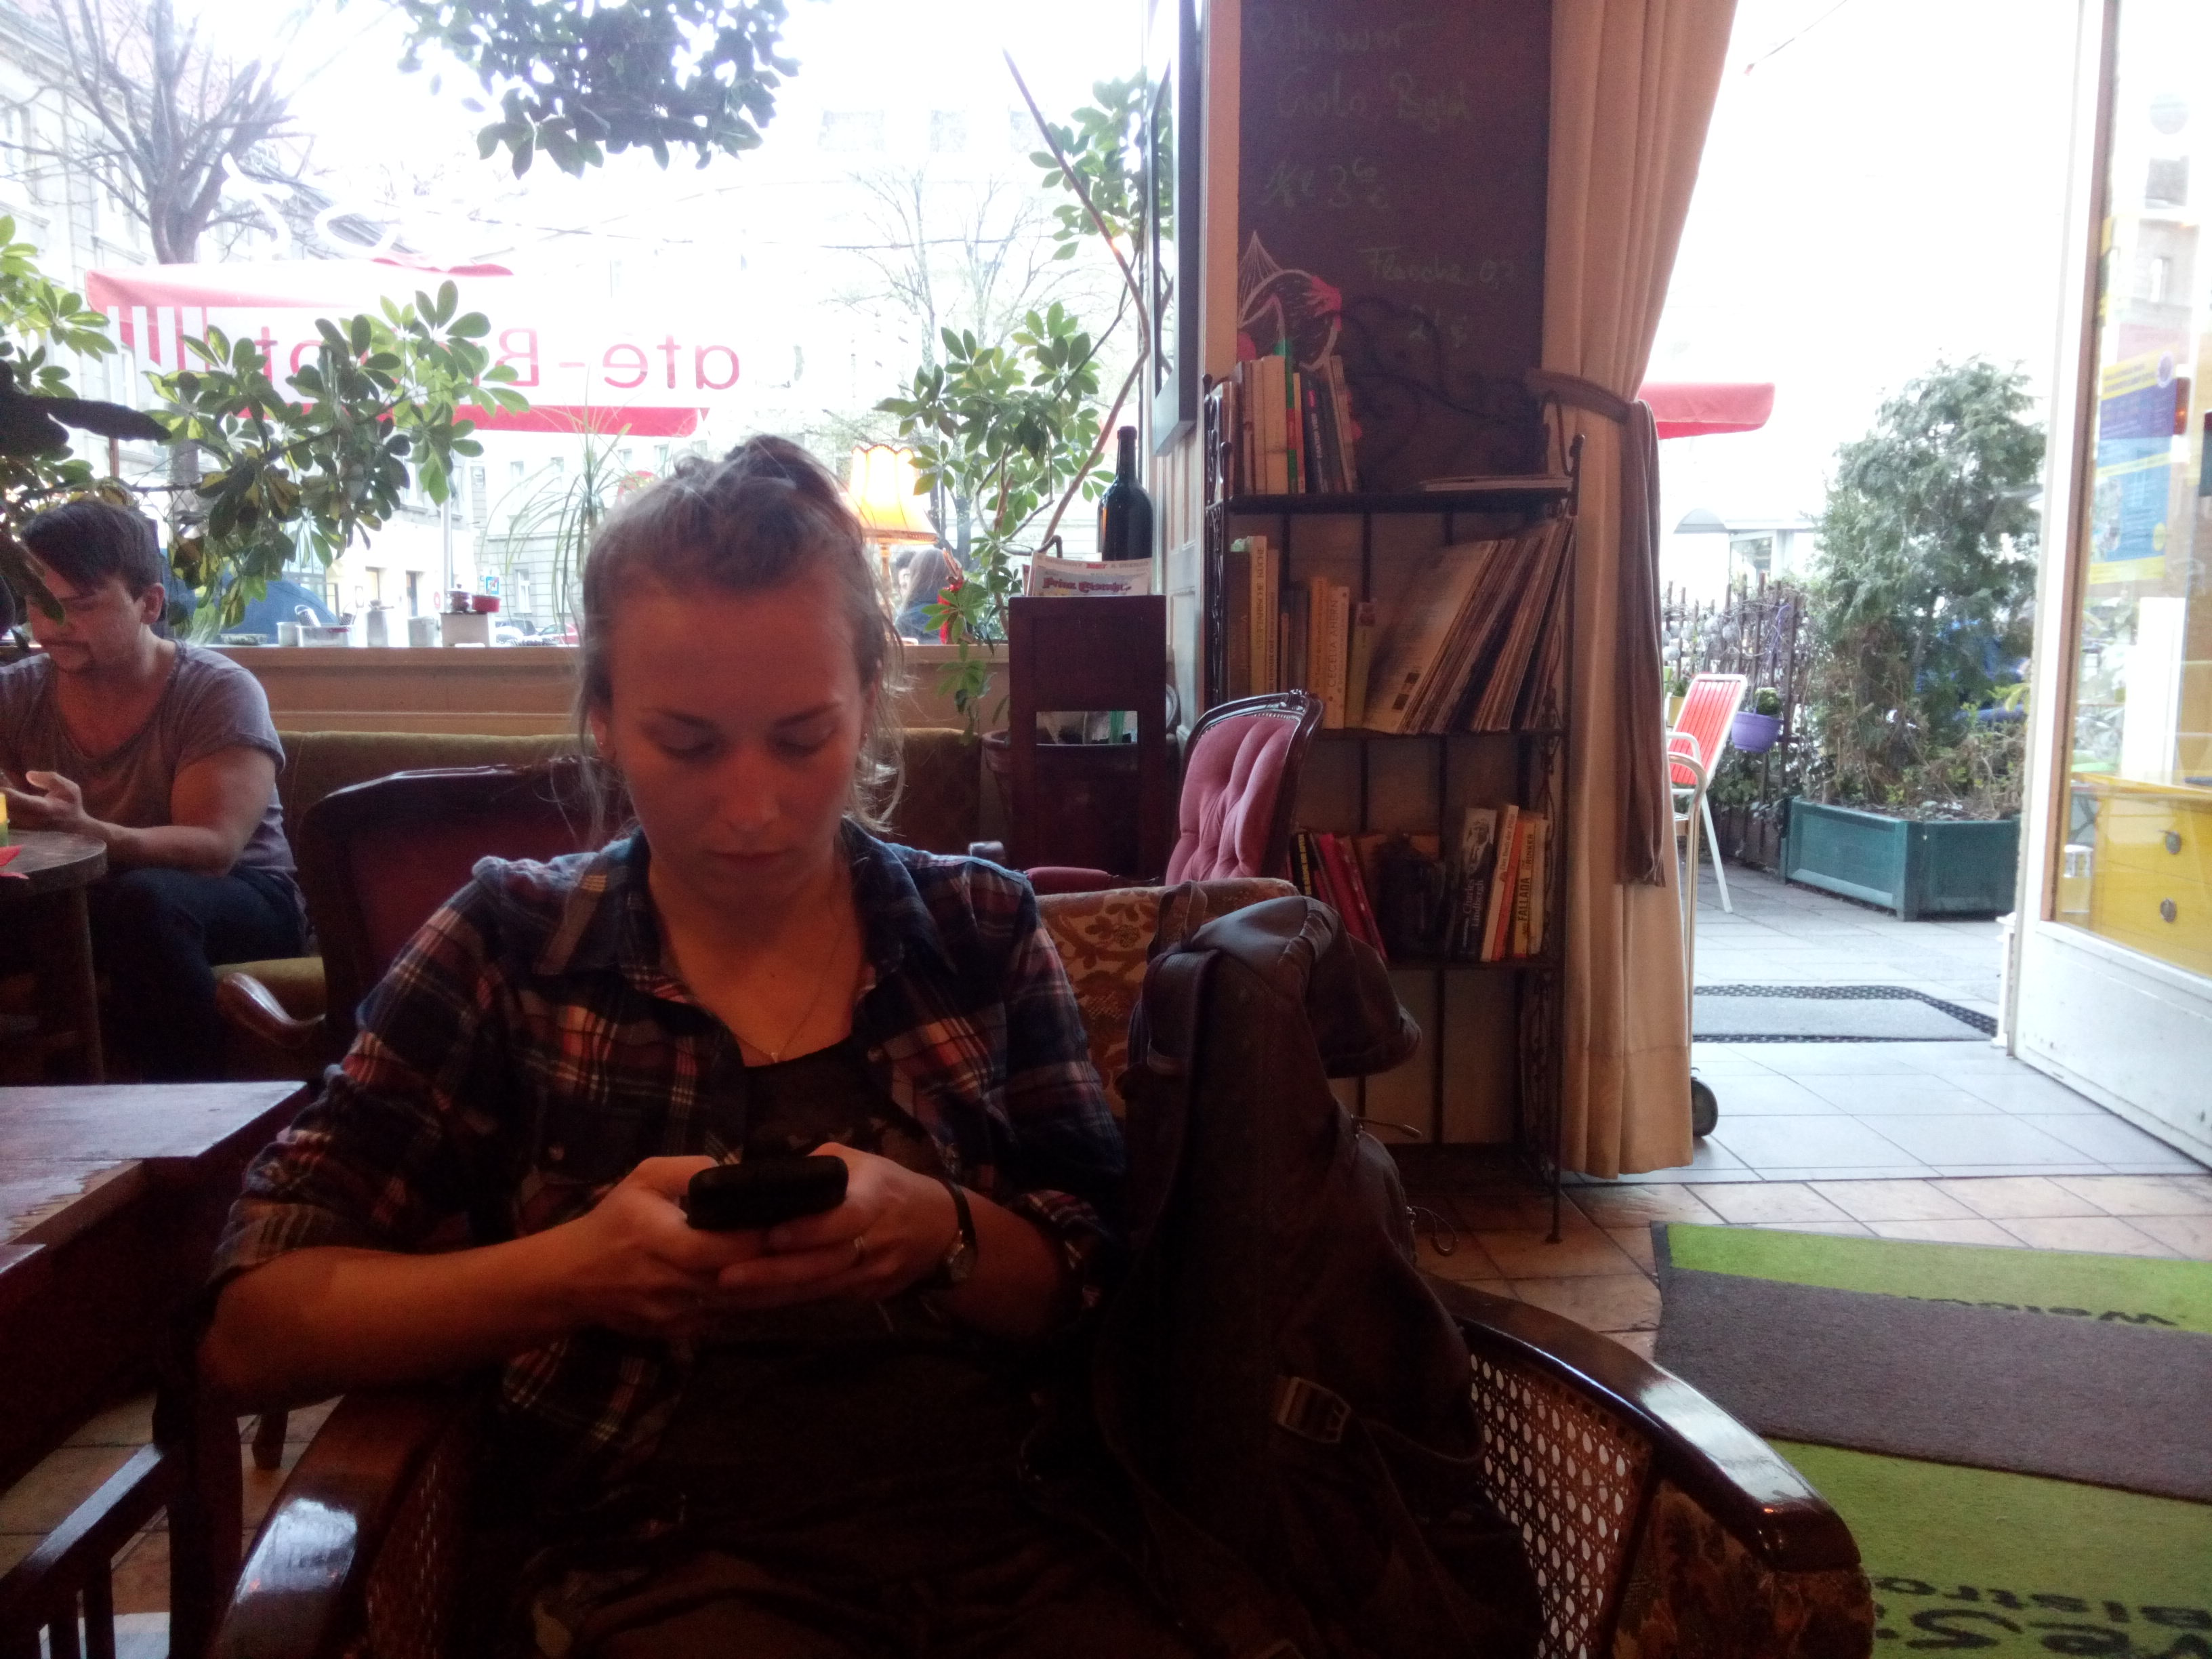 A woman with hair tied back and a checked shirt, texting, sitting in a cafe with books on a shelf in the background